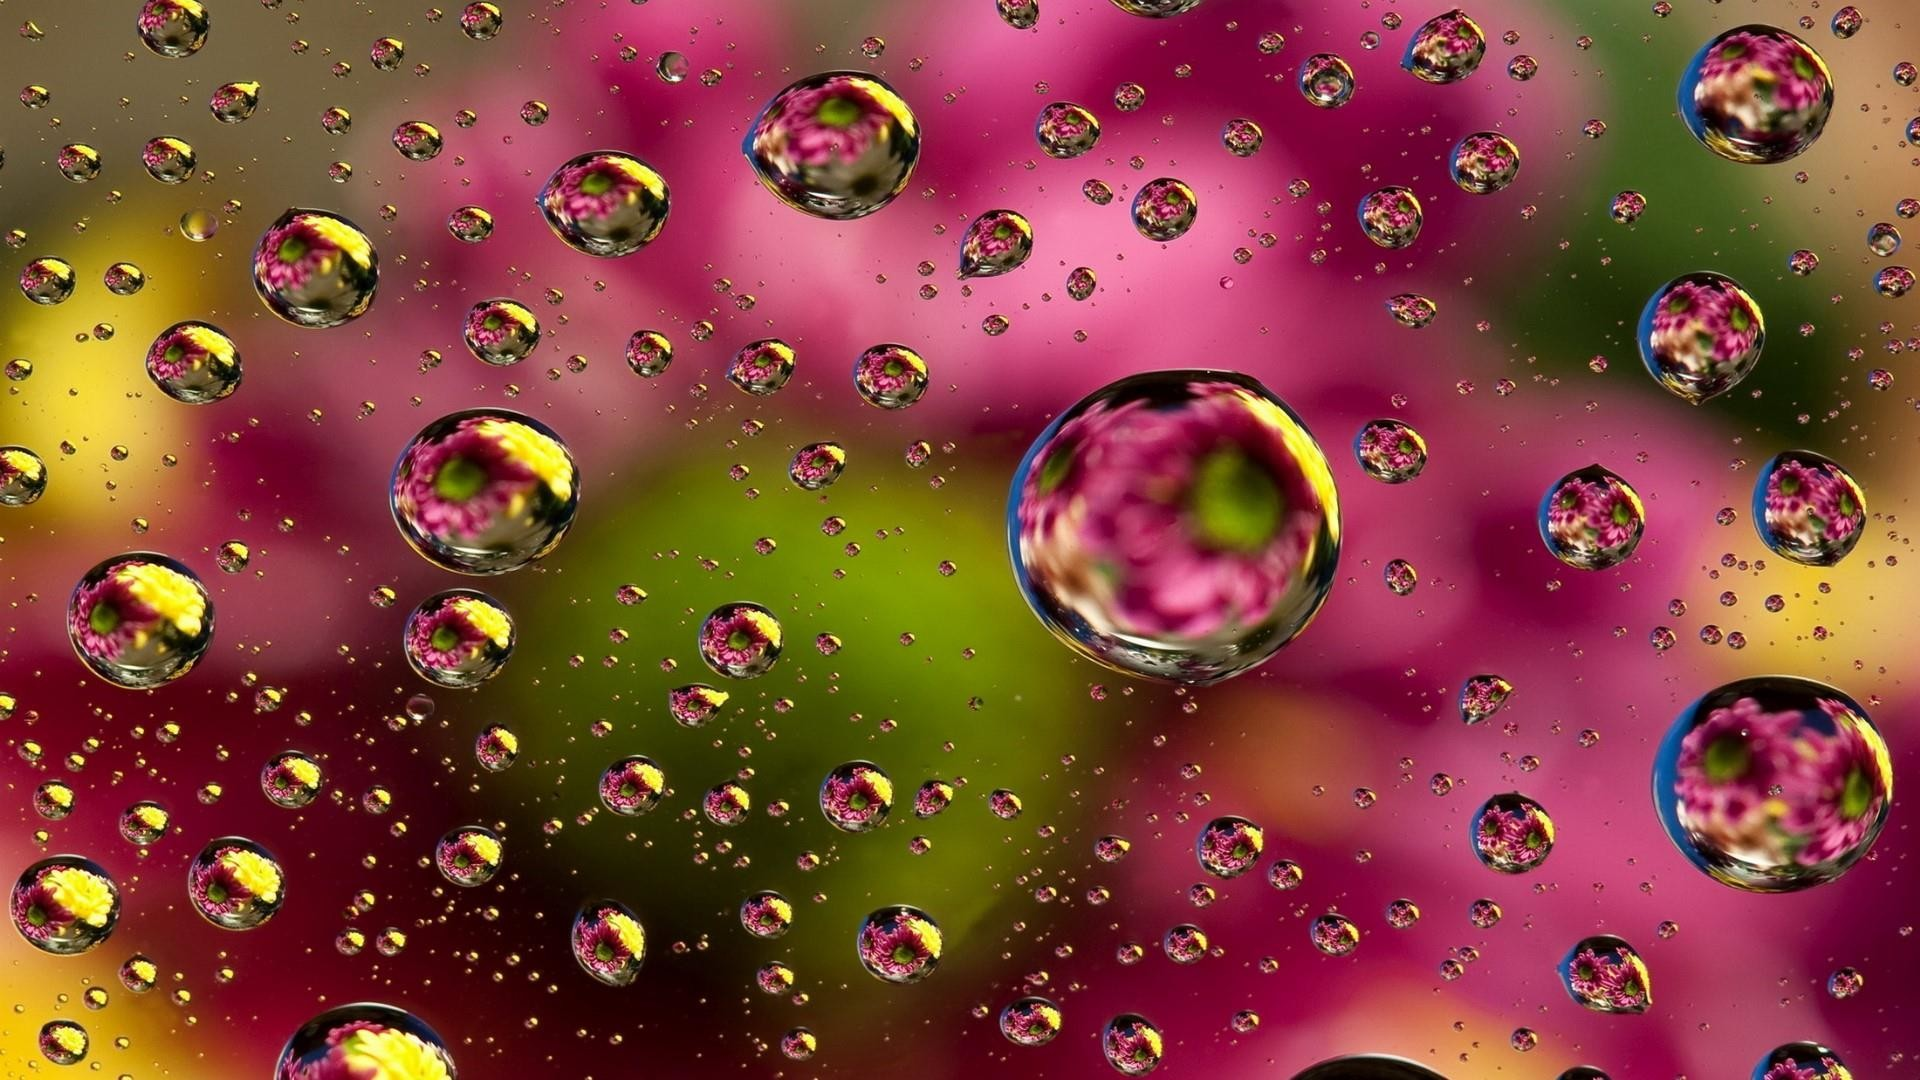 Res: 1920x1080, Colorful Waterdrops Wallpaper | Wallpaper Studio 10 | Tens of thousands HD  and UltraHD wallpapers for Android, Windows and Xbox